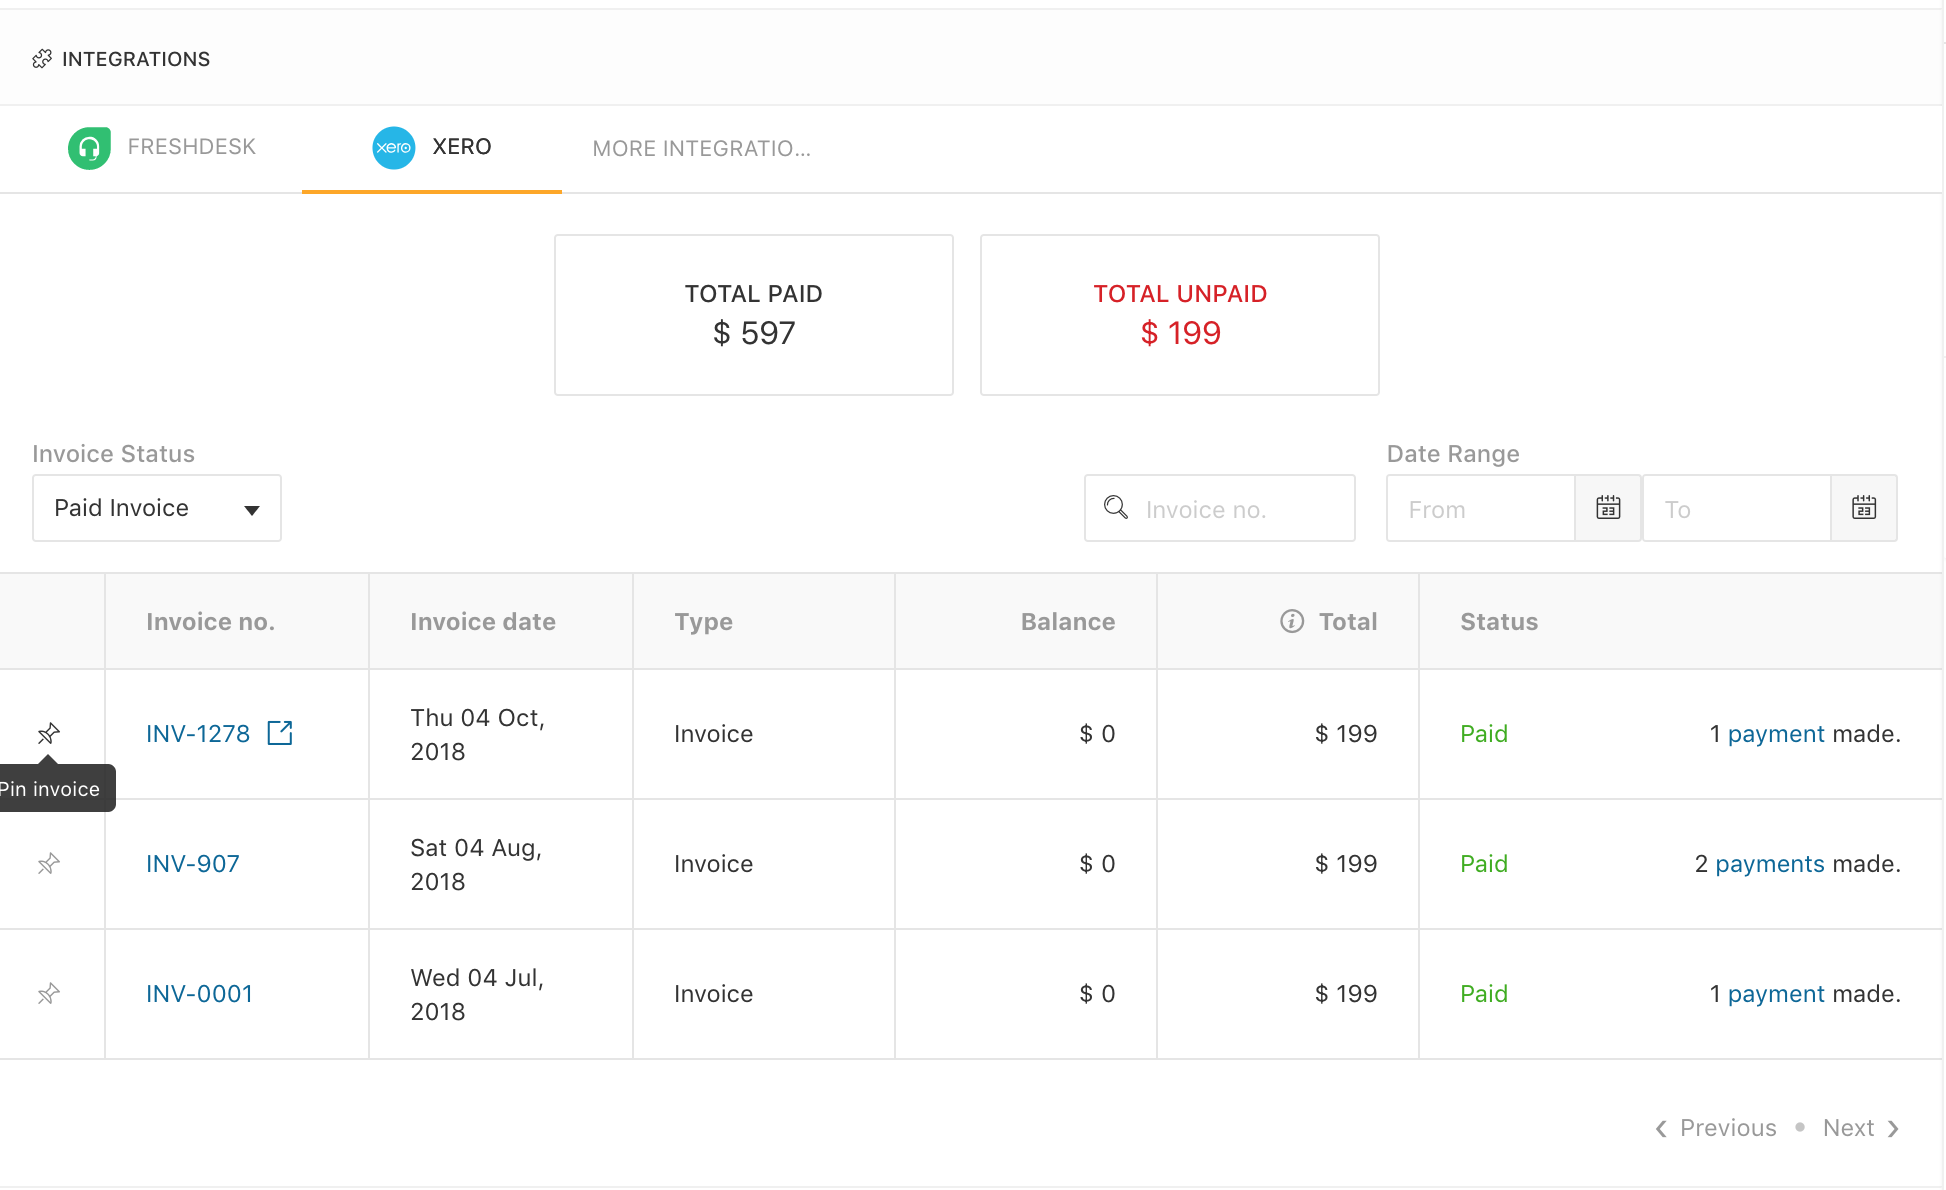 xero integration pin invoices